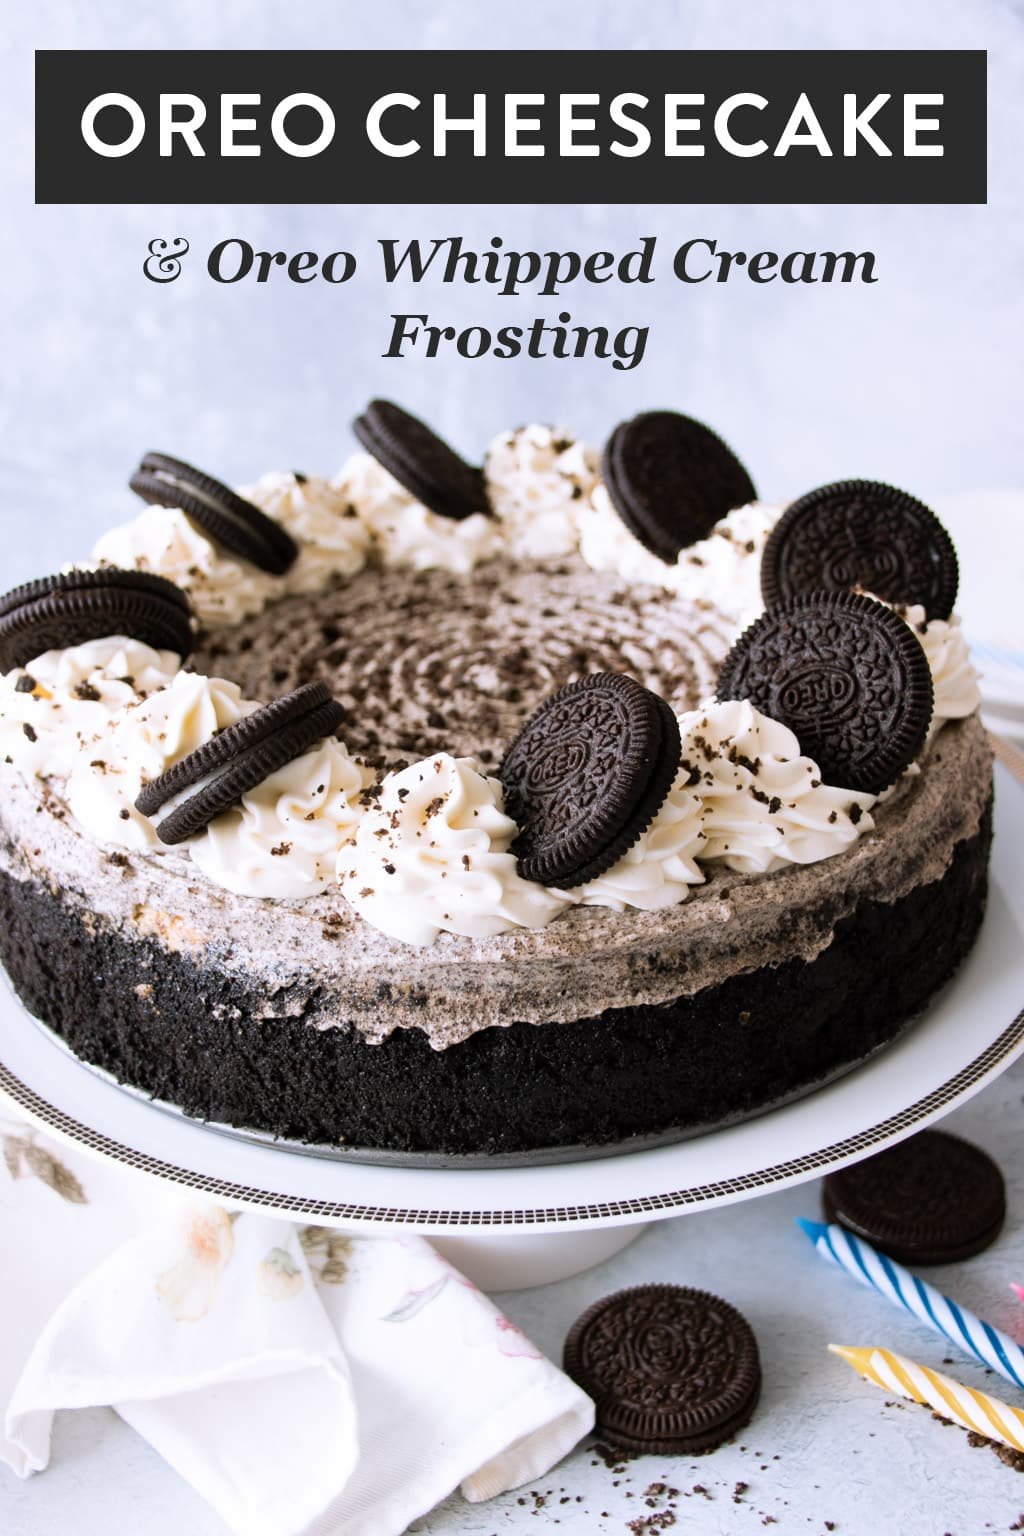 Oreo Cheesecake Featured Image for Pinterest